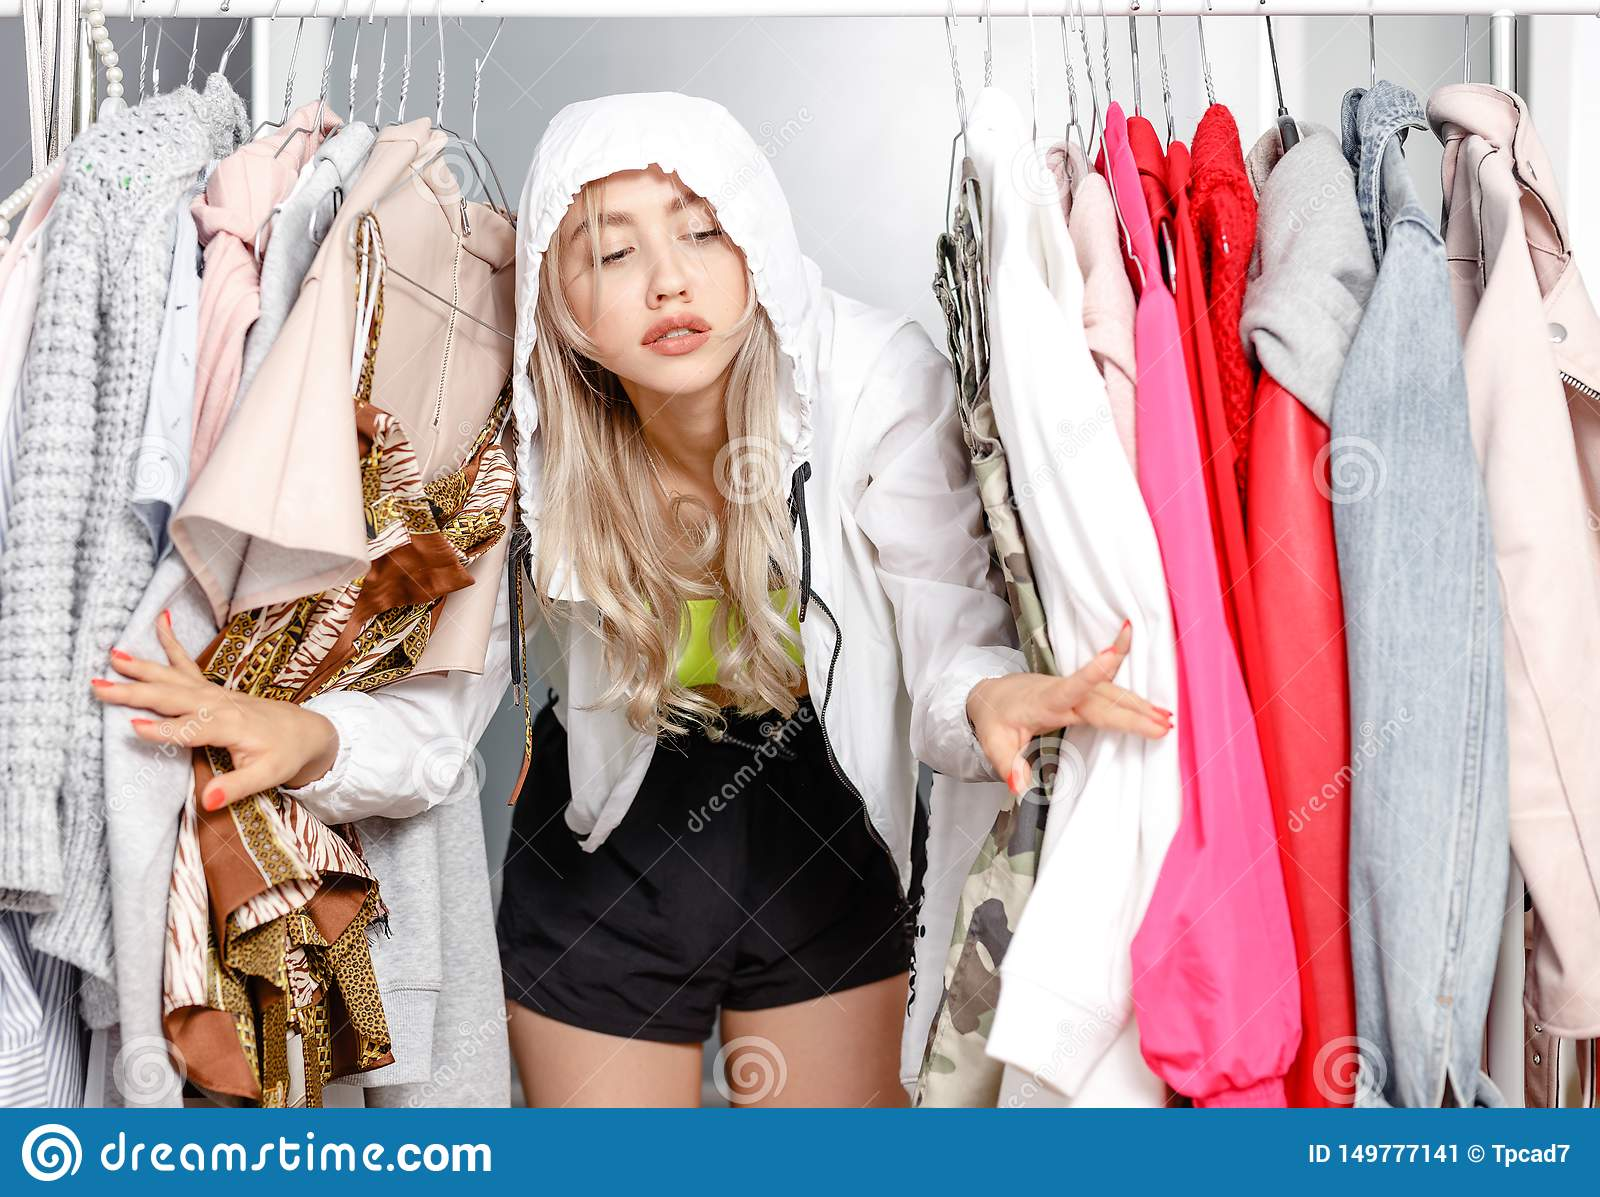 Funny young girl blogger dressed in fashionable clothes standing between clothes hanging on a hanger in the wardrobe